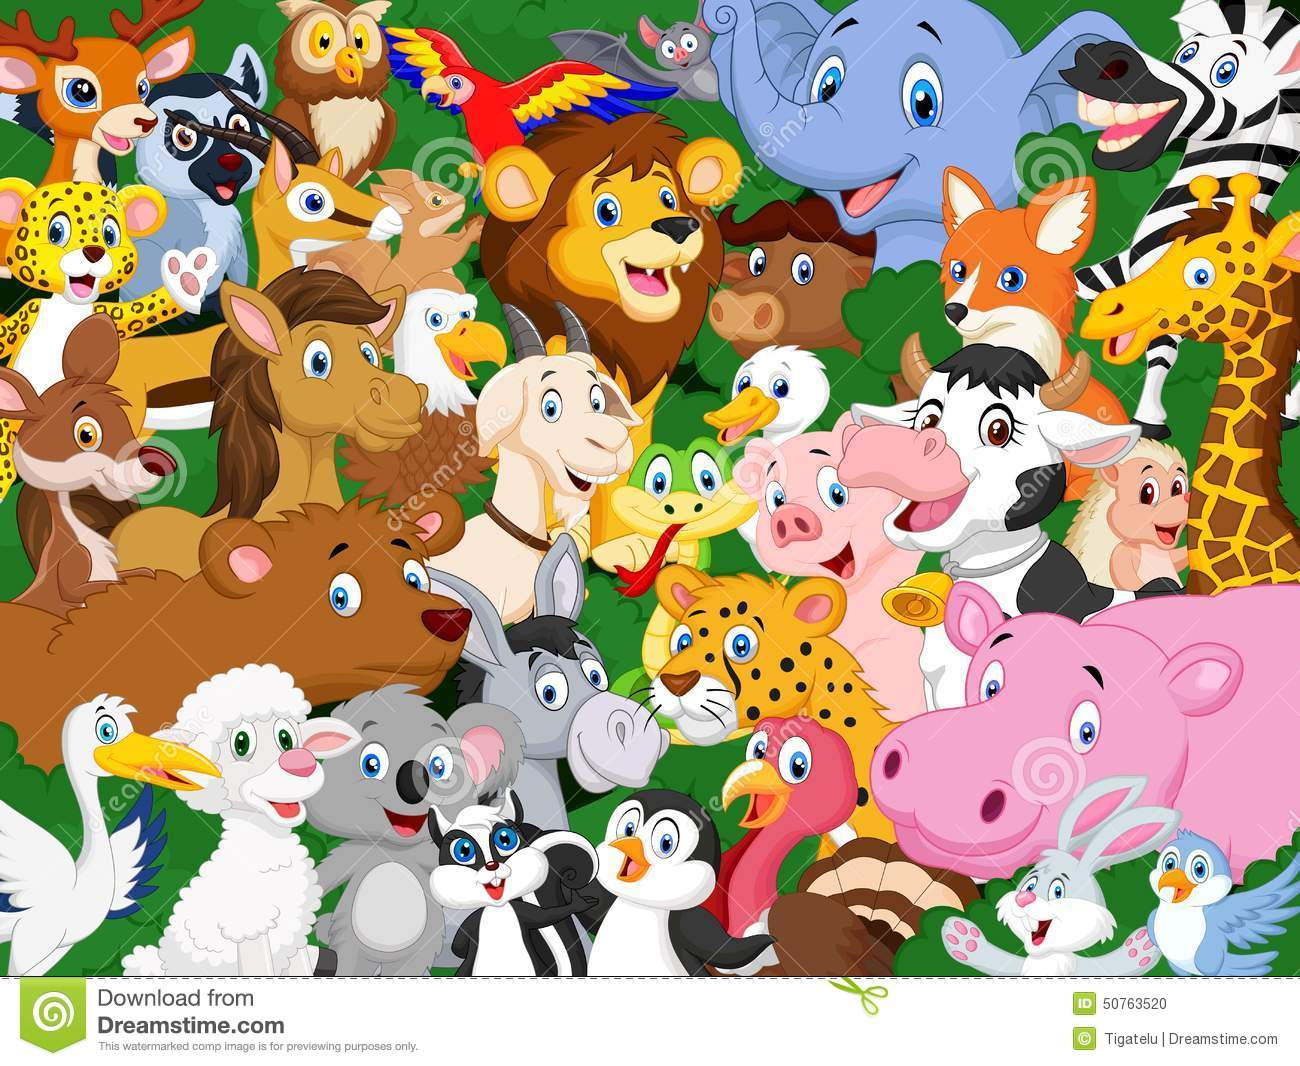 Cartoon background stock vector. Crowd clipart animal svg freeuse stock